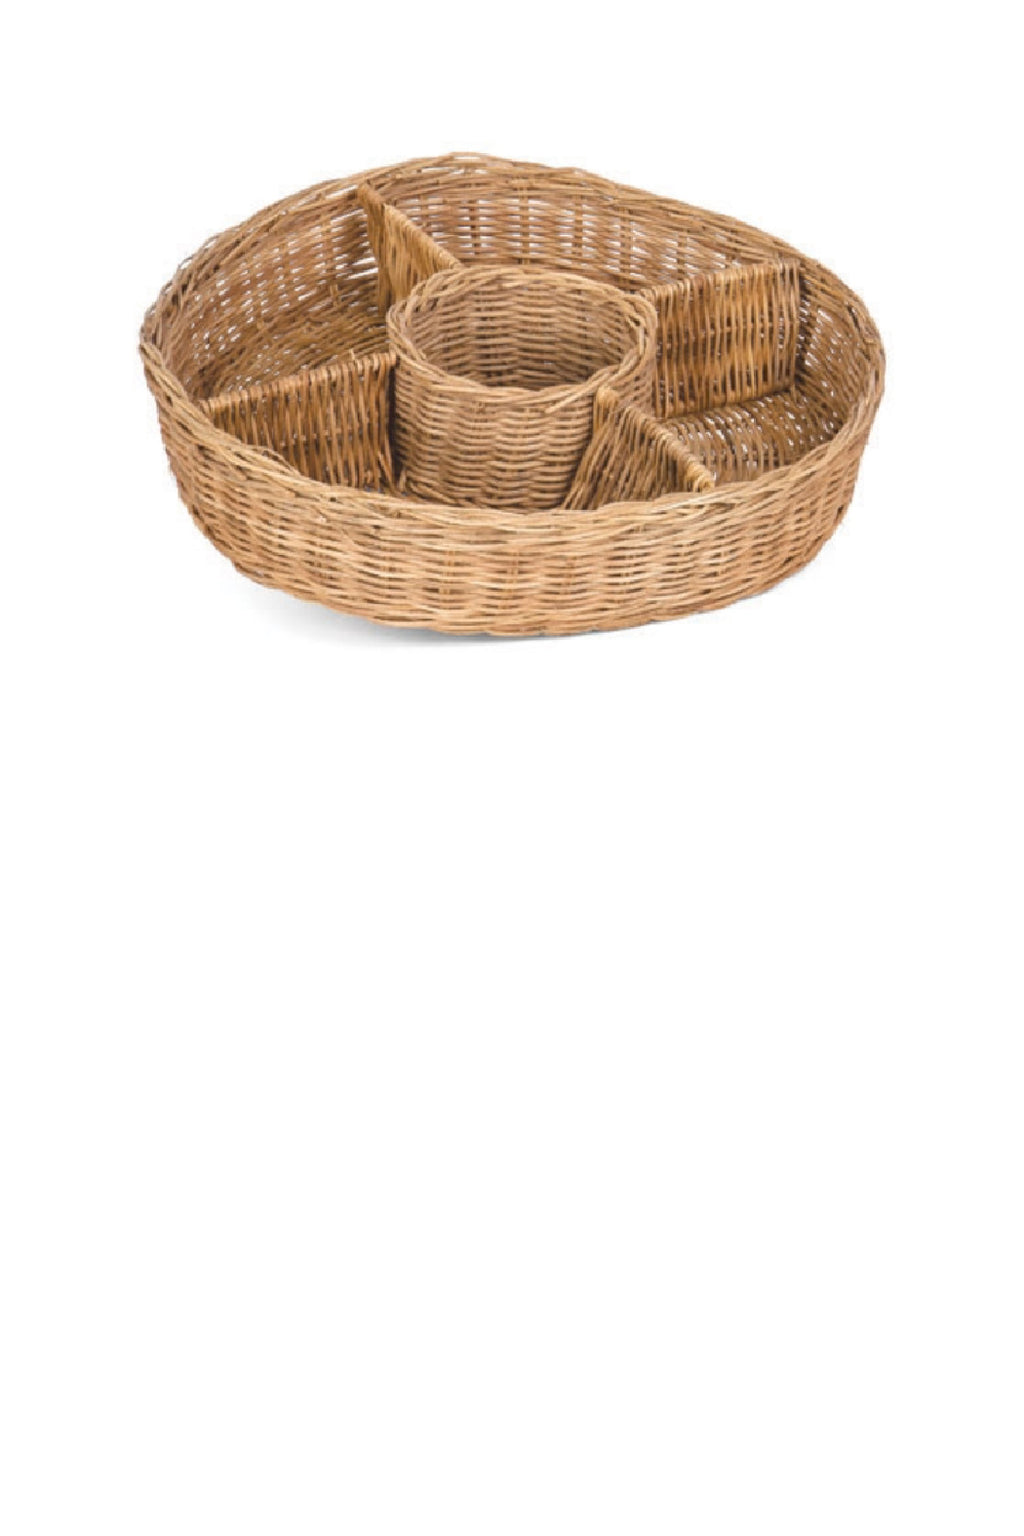 Willow Group Rattan Divided Tray